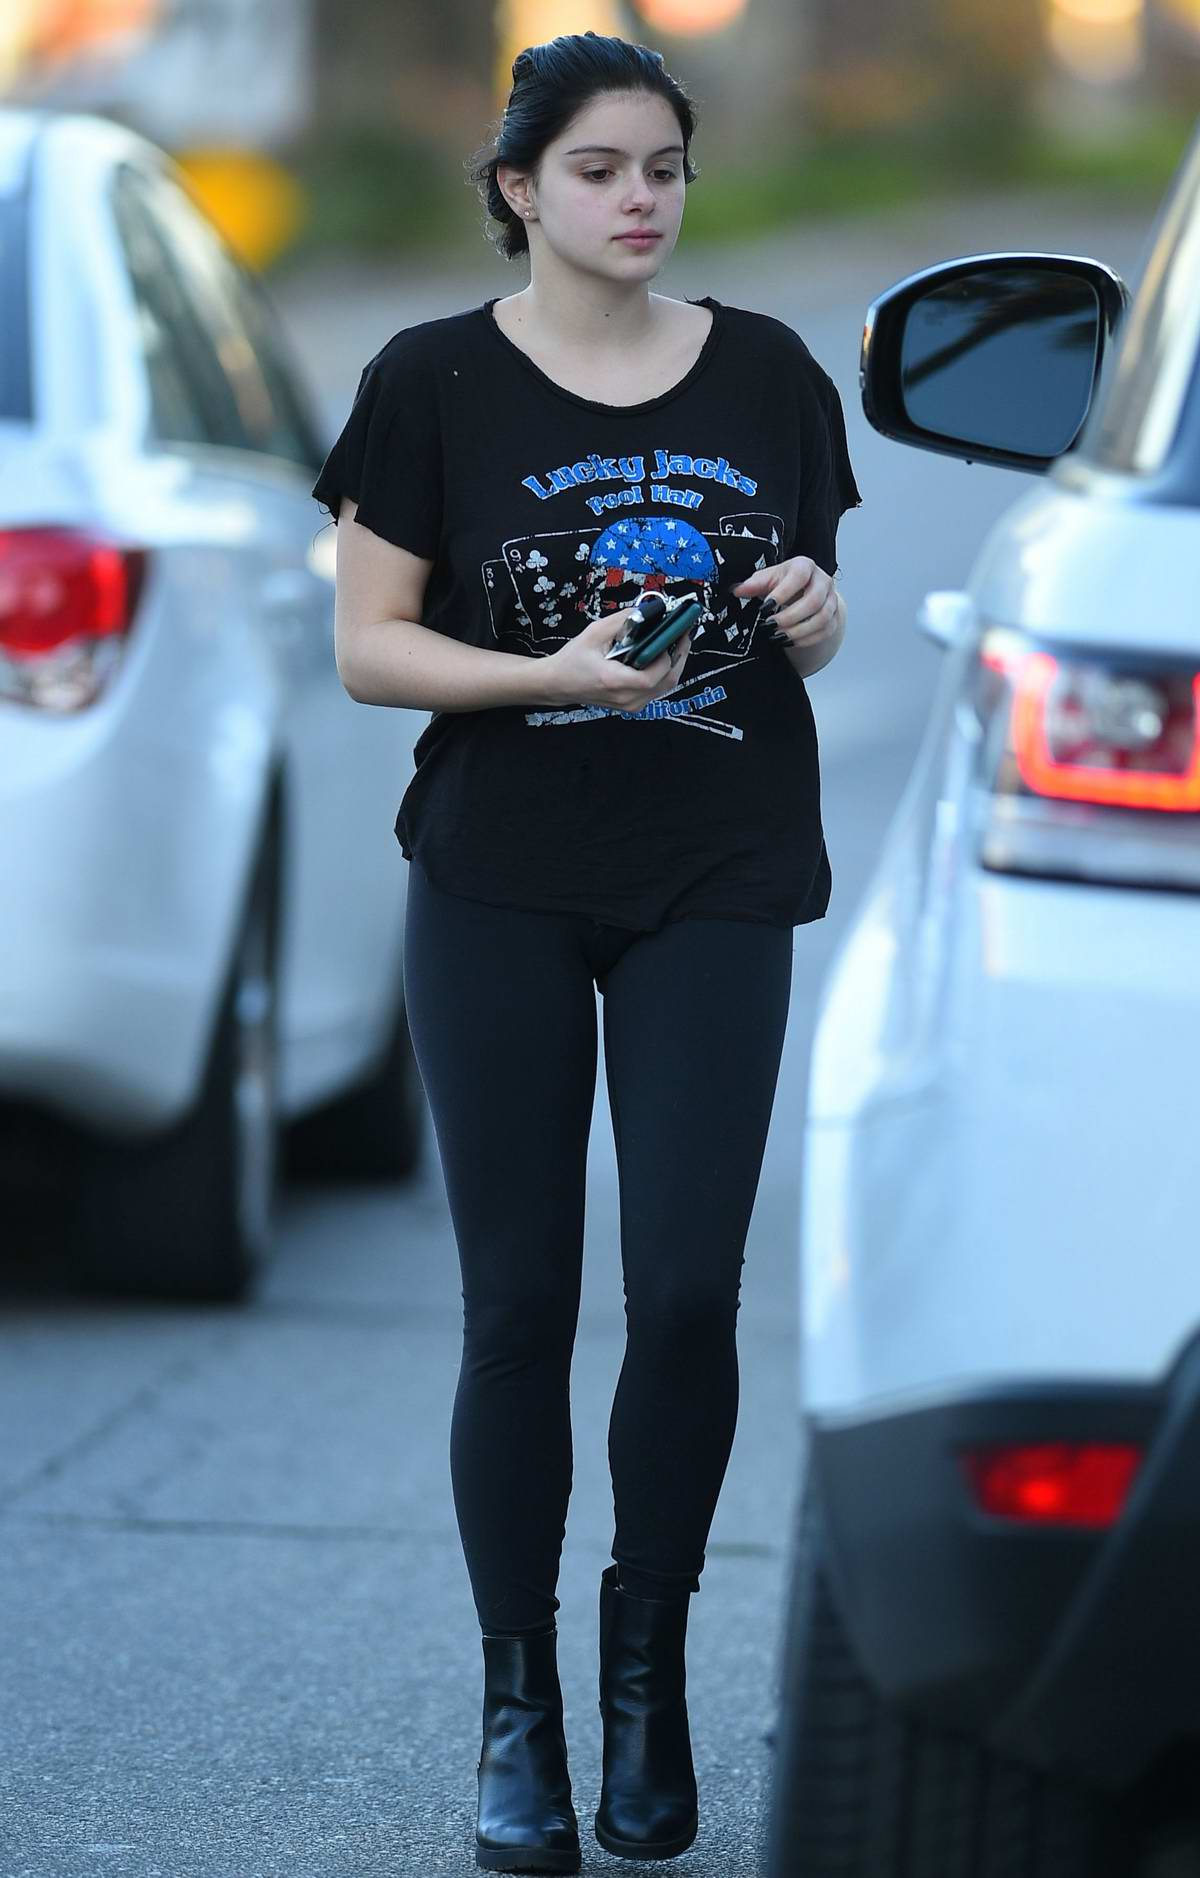 Ariel Winter wears all black as she steps out for an appointment in Los Angeles